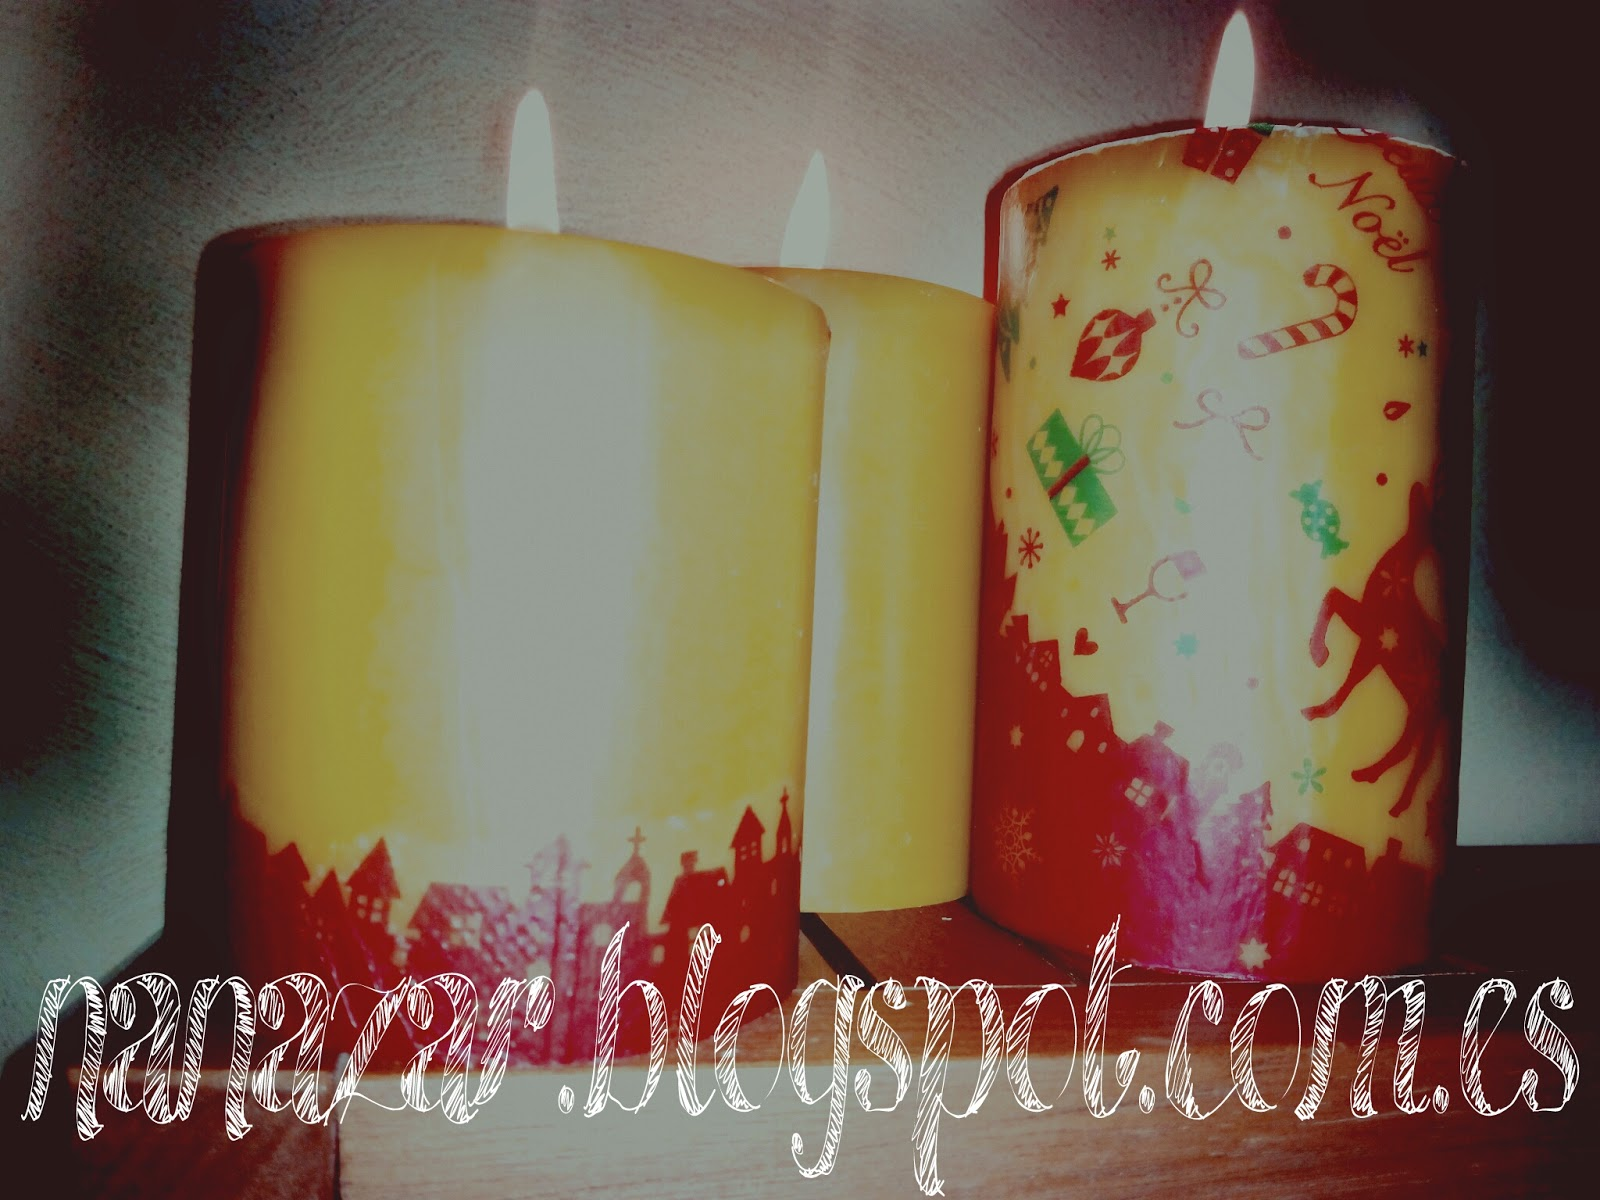 Nanazar decorar velas con servilletas for Decorar jarrones con velas